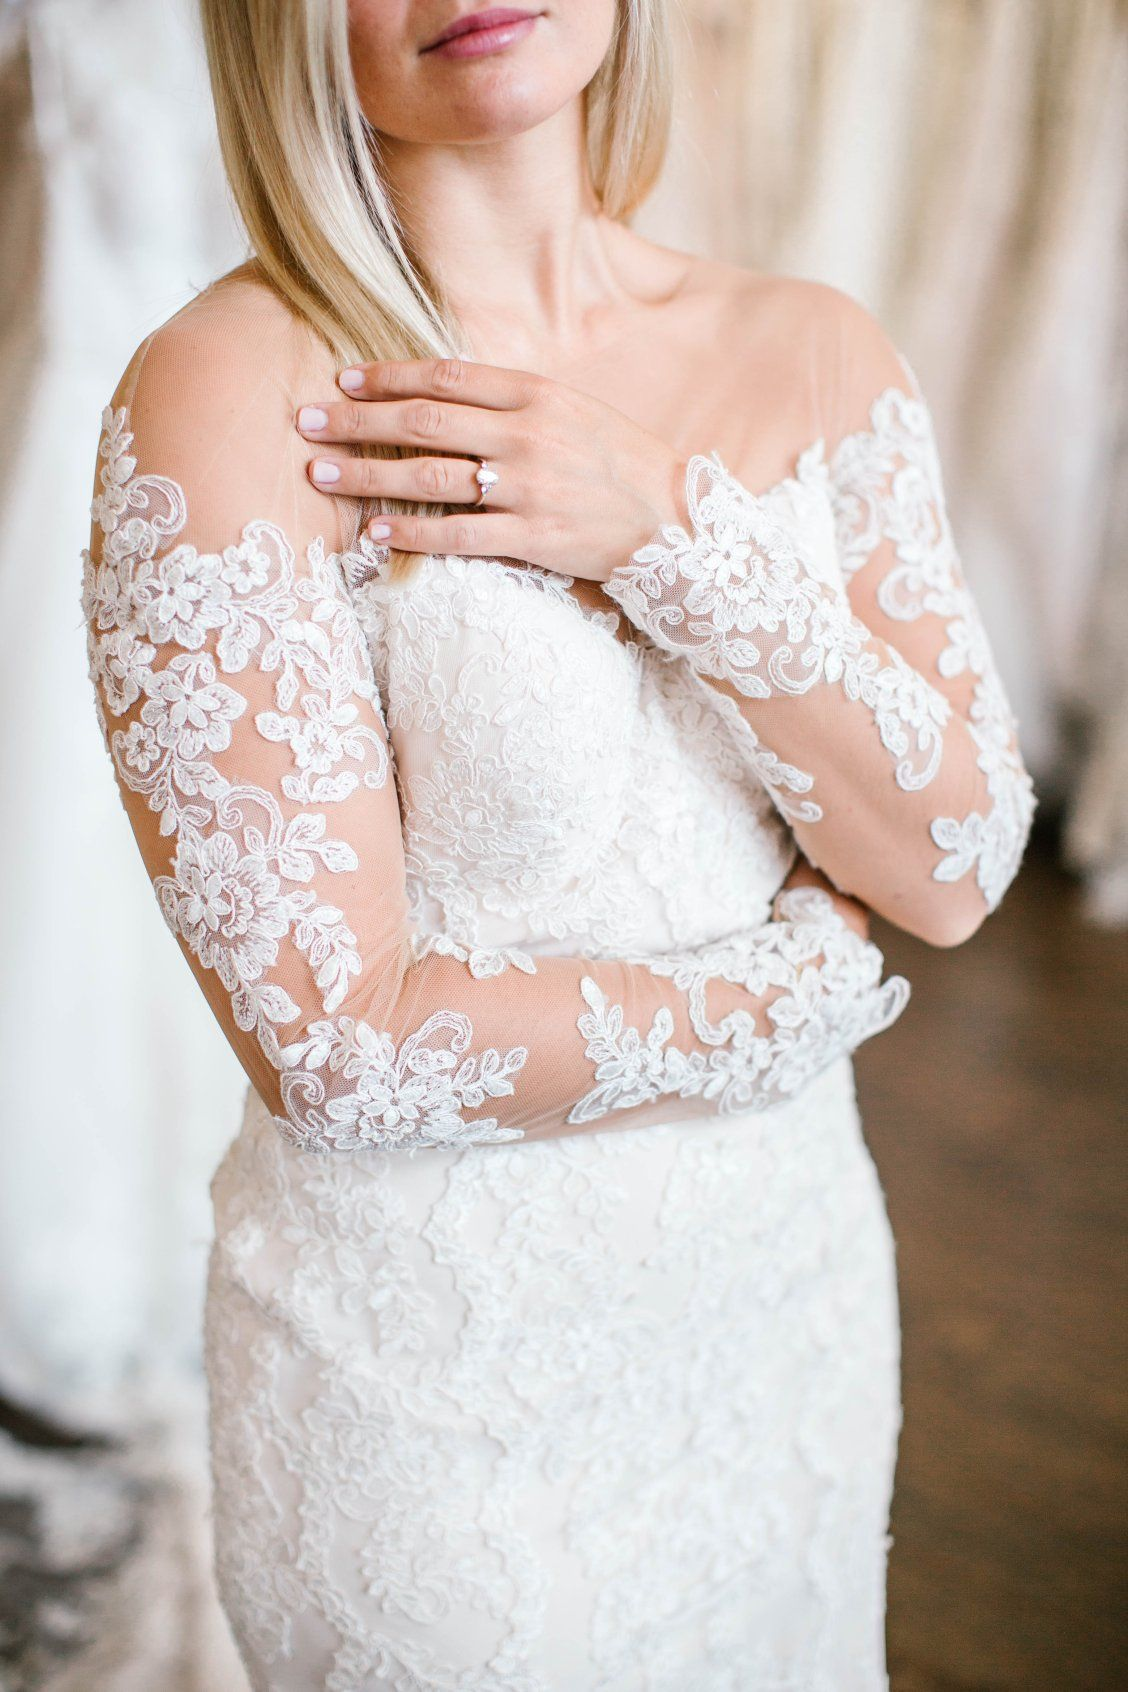 70407f87c7 This wedding gown from Stella York features romantic, long sleeves of  illusion lace that will ensure you are the center of elegance and attention.